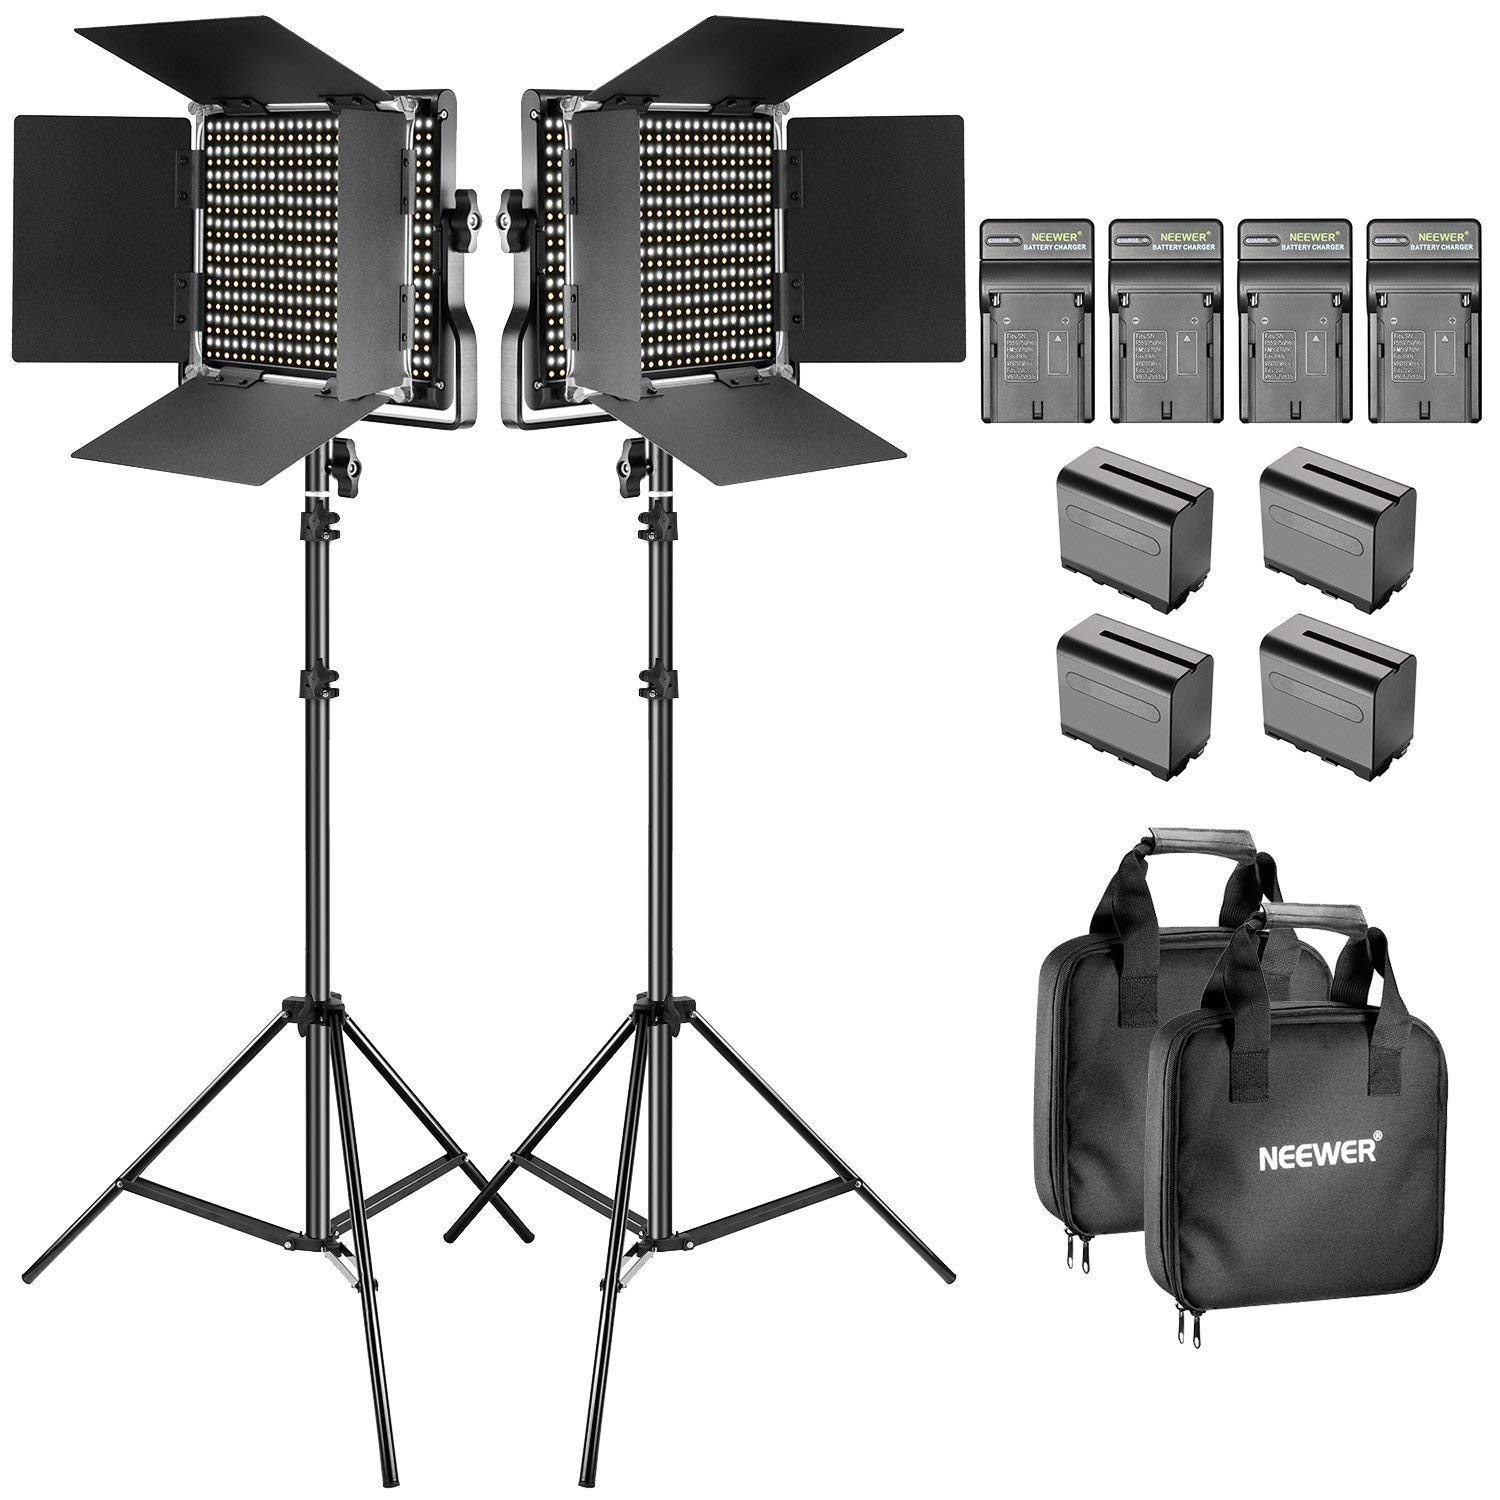 Neewer Bi-Color LED Video Light and Stand Kit with Battery and Charger-660 LED with U Bracket and Barndoor(3200-5600K, CRI 96+), 3-6.5 Feet Adjustable Light Stand for Studio, YouTube Shooting (2 pack) by Neewer (Image #1)